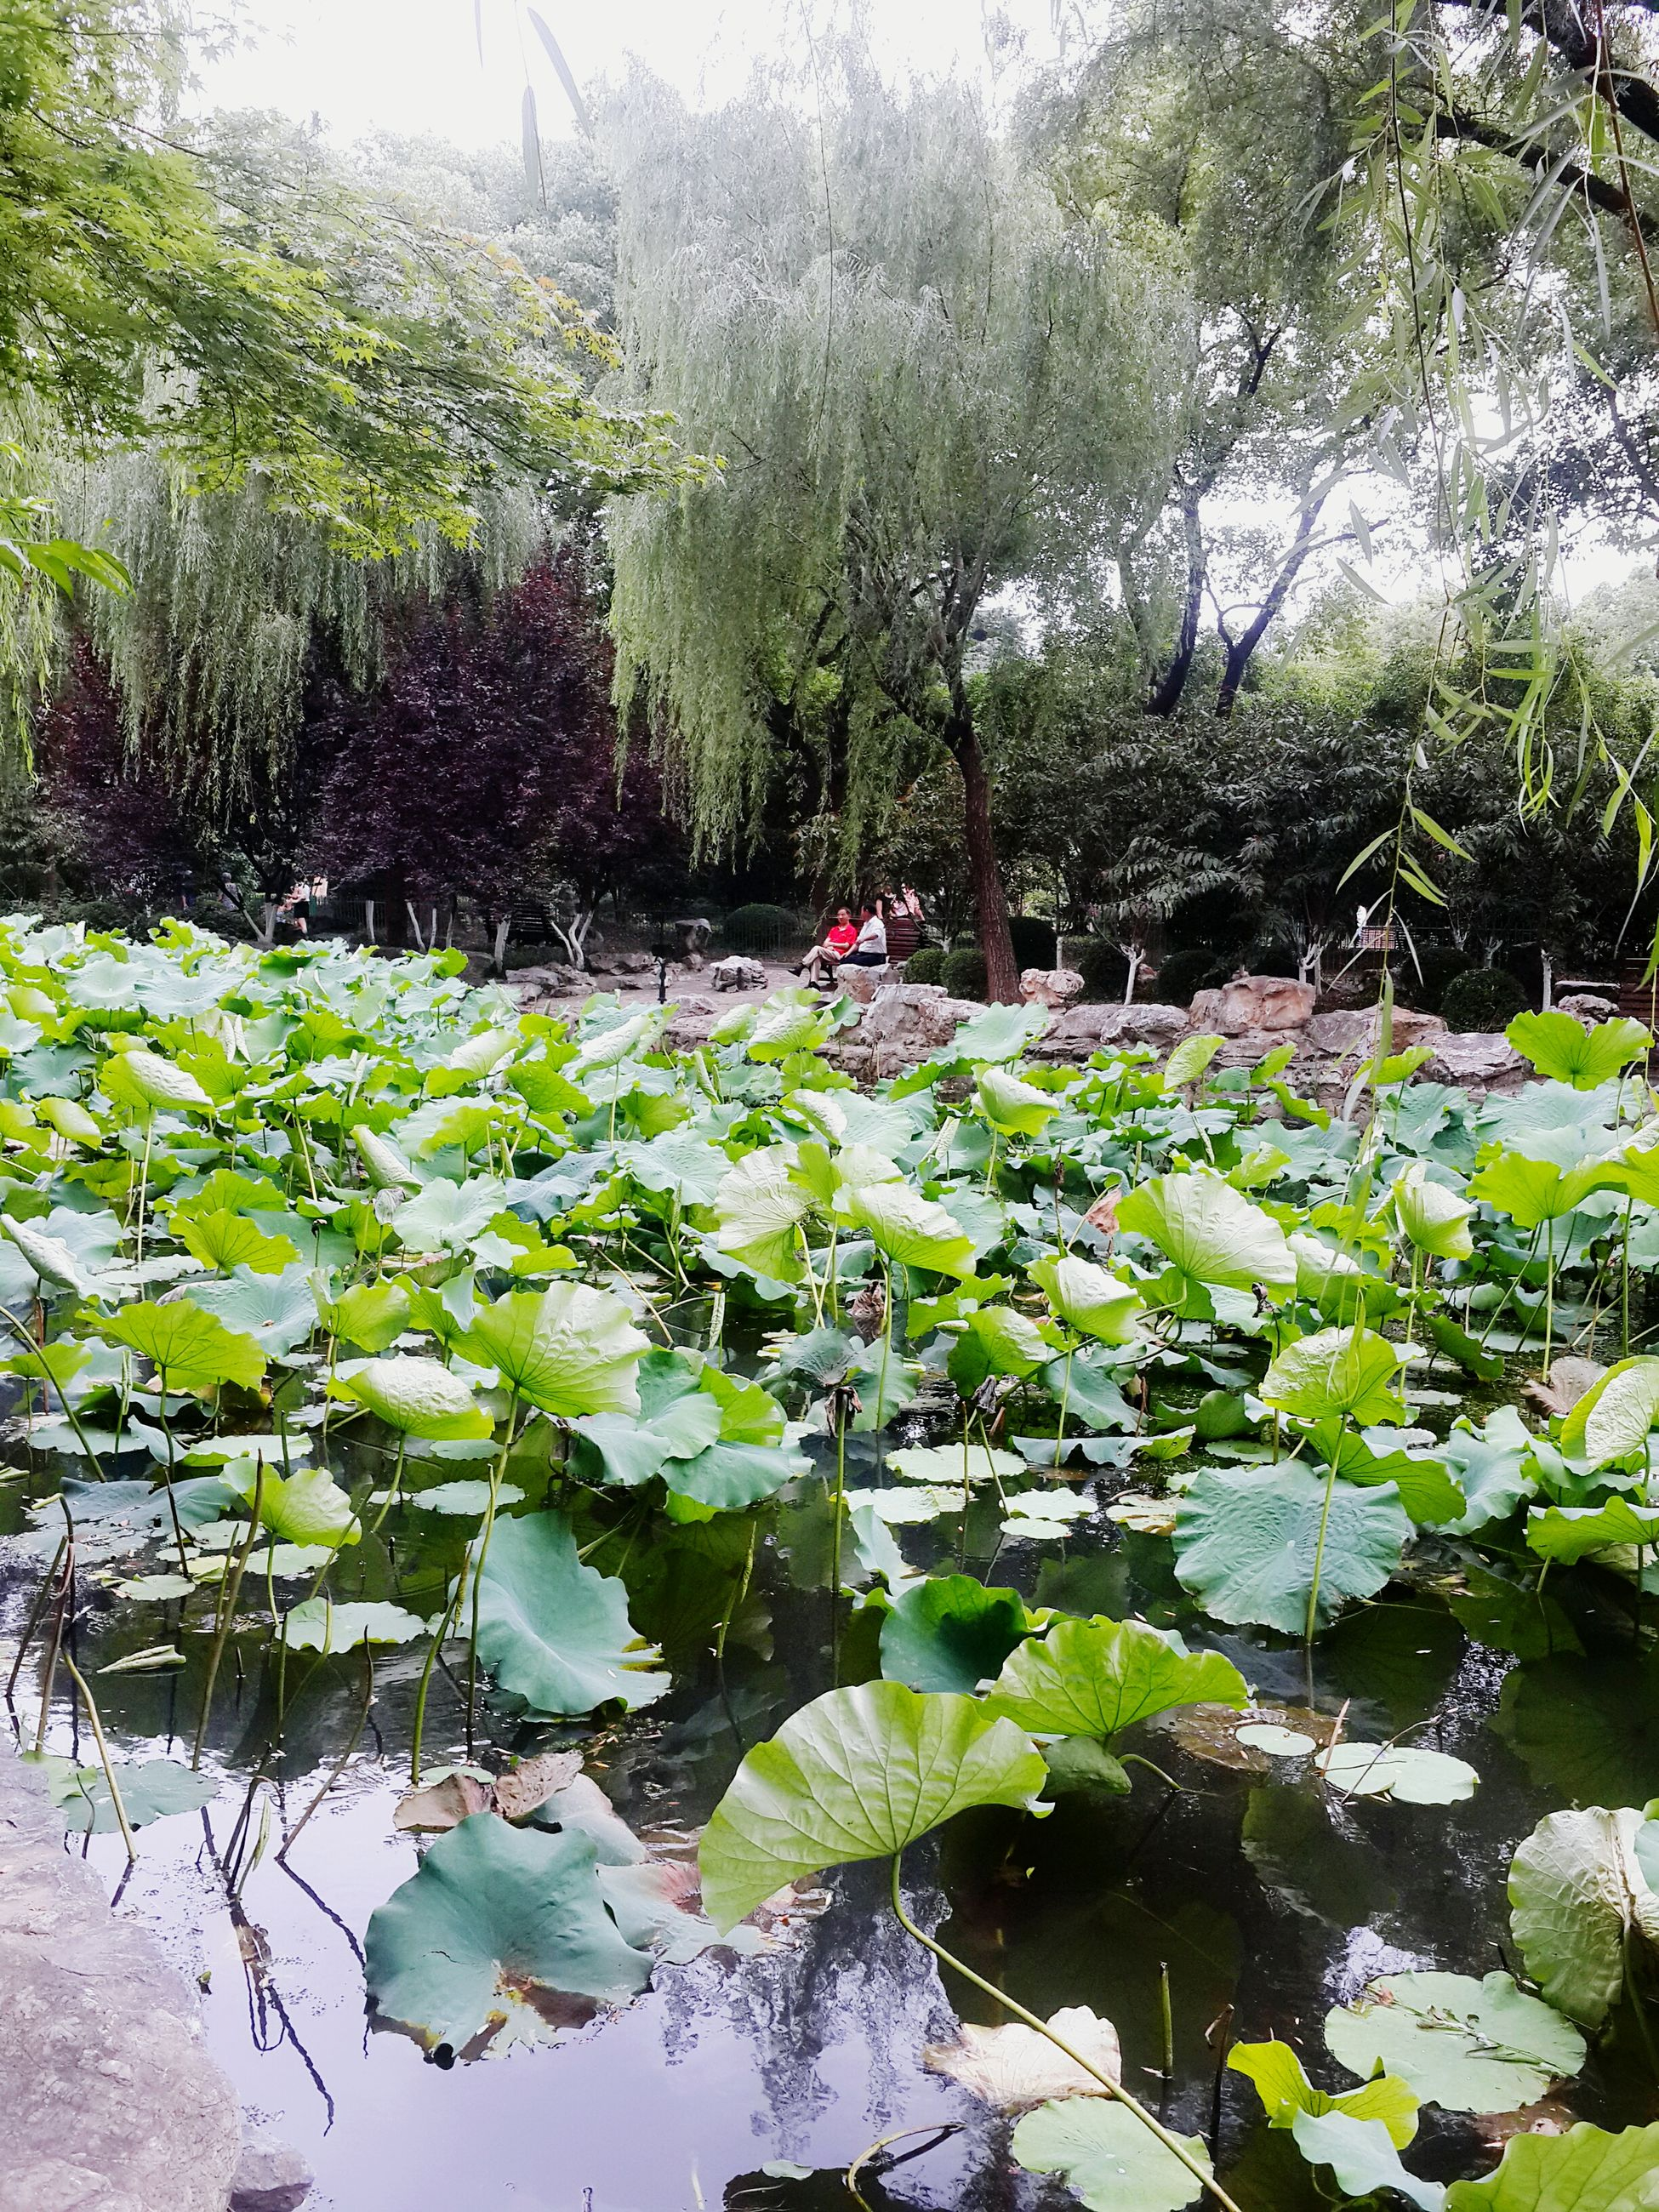 growth, flower, plant, green color, leaf, beauty in nature, nature, tree, freshness, tranquility, fragility, growing, water, park - man made space, day, blooming, tranquil scene, pond, outdoors, green